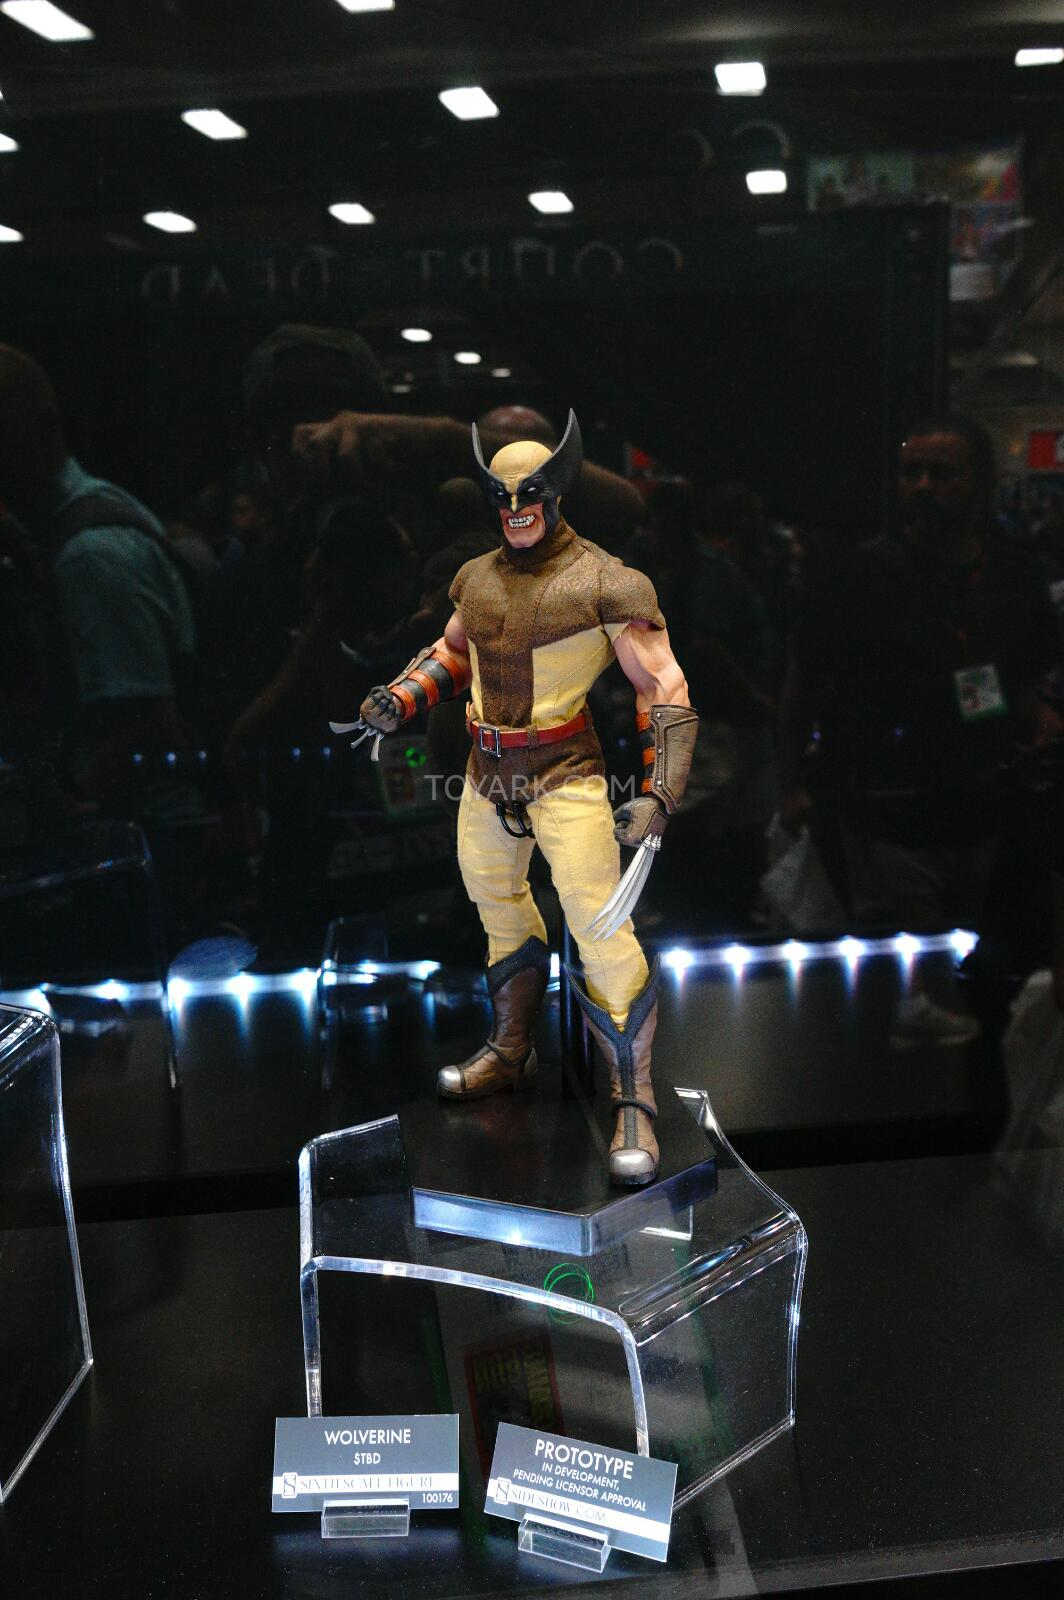 [Sideshow] Marvel Sixth Scale Collection - Wolverine DSC07548